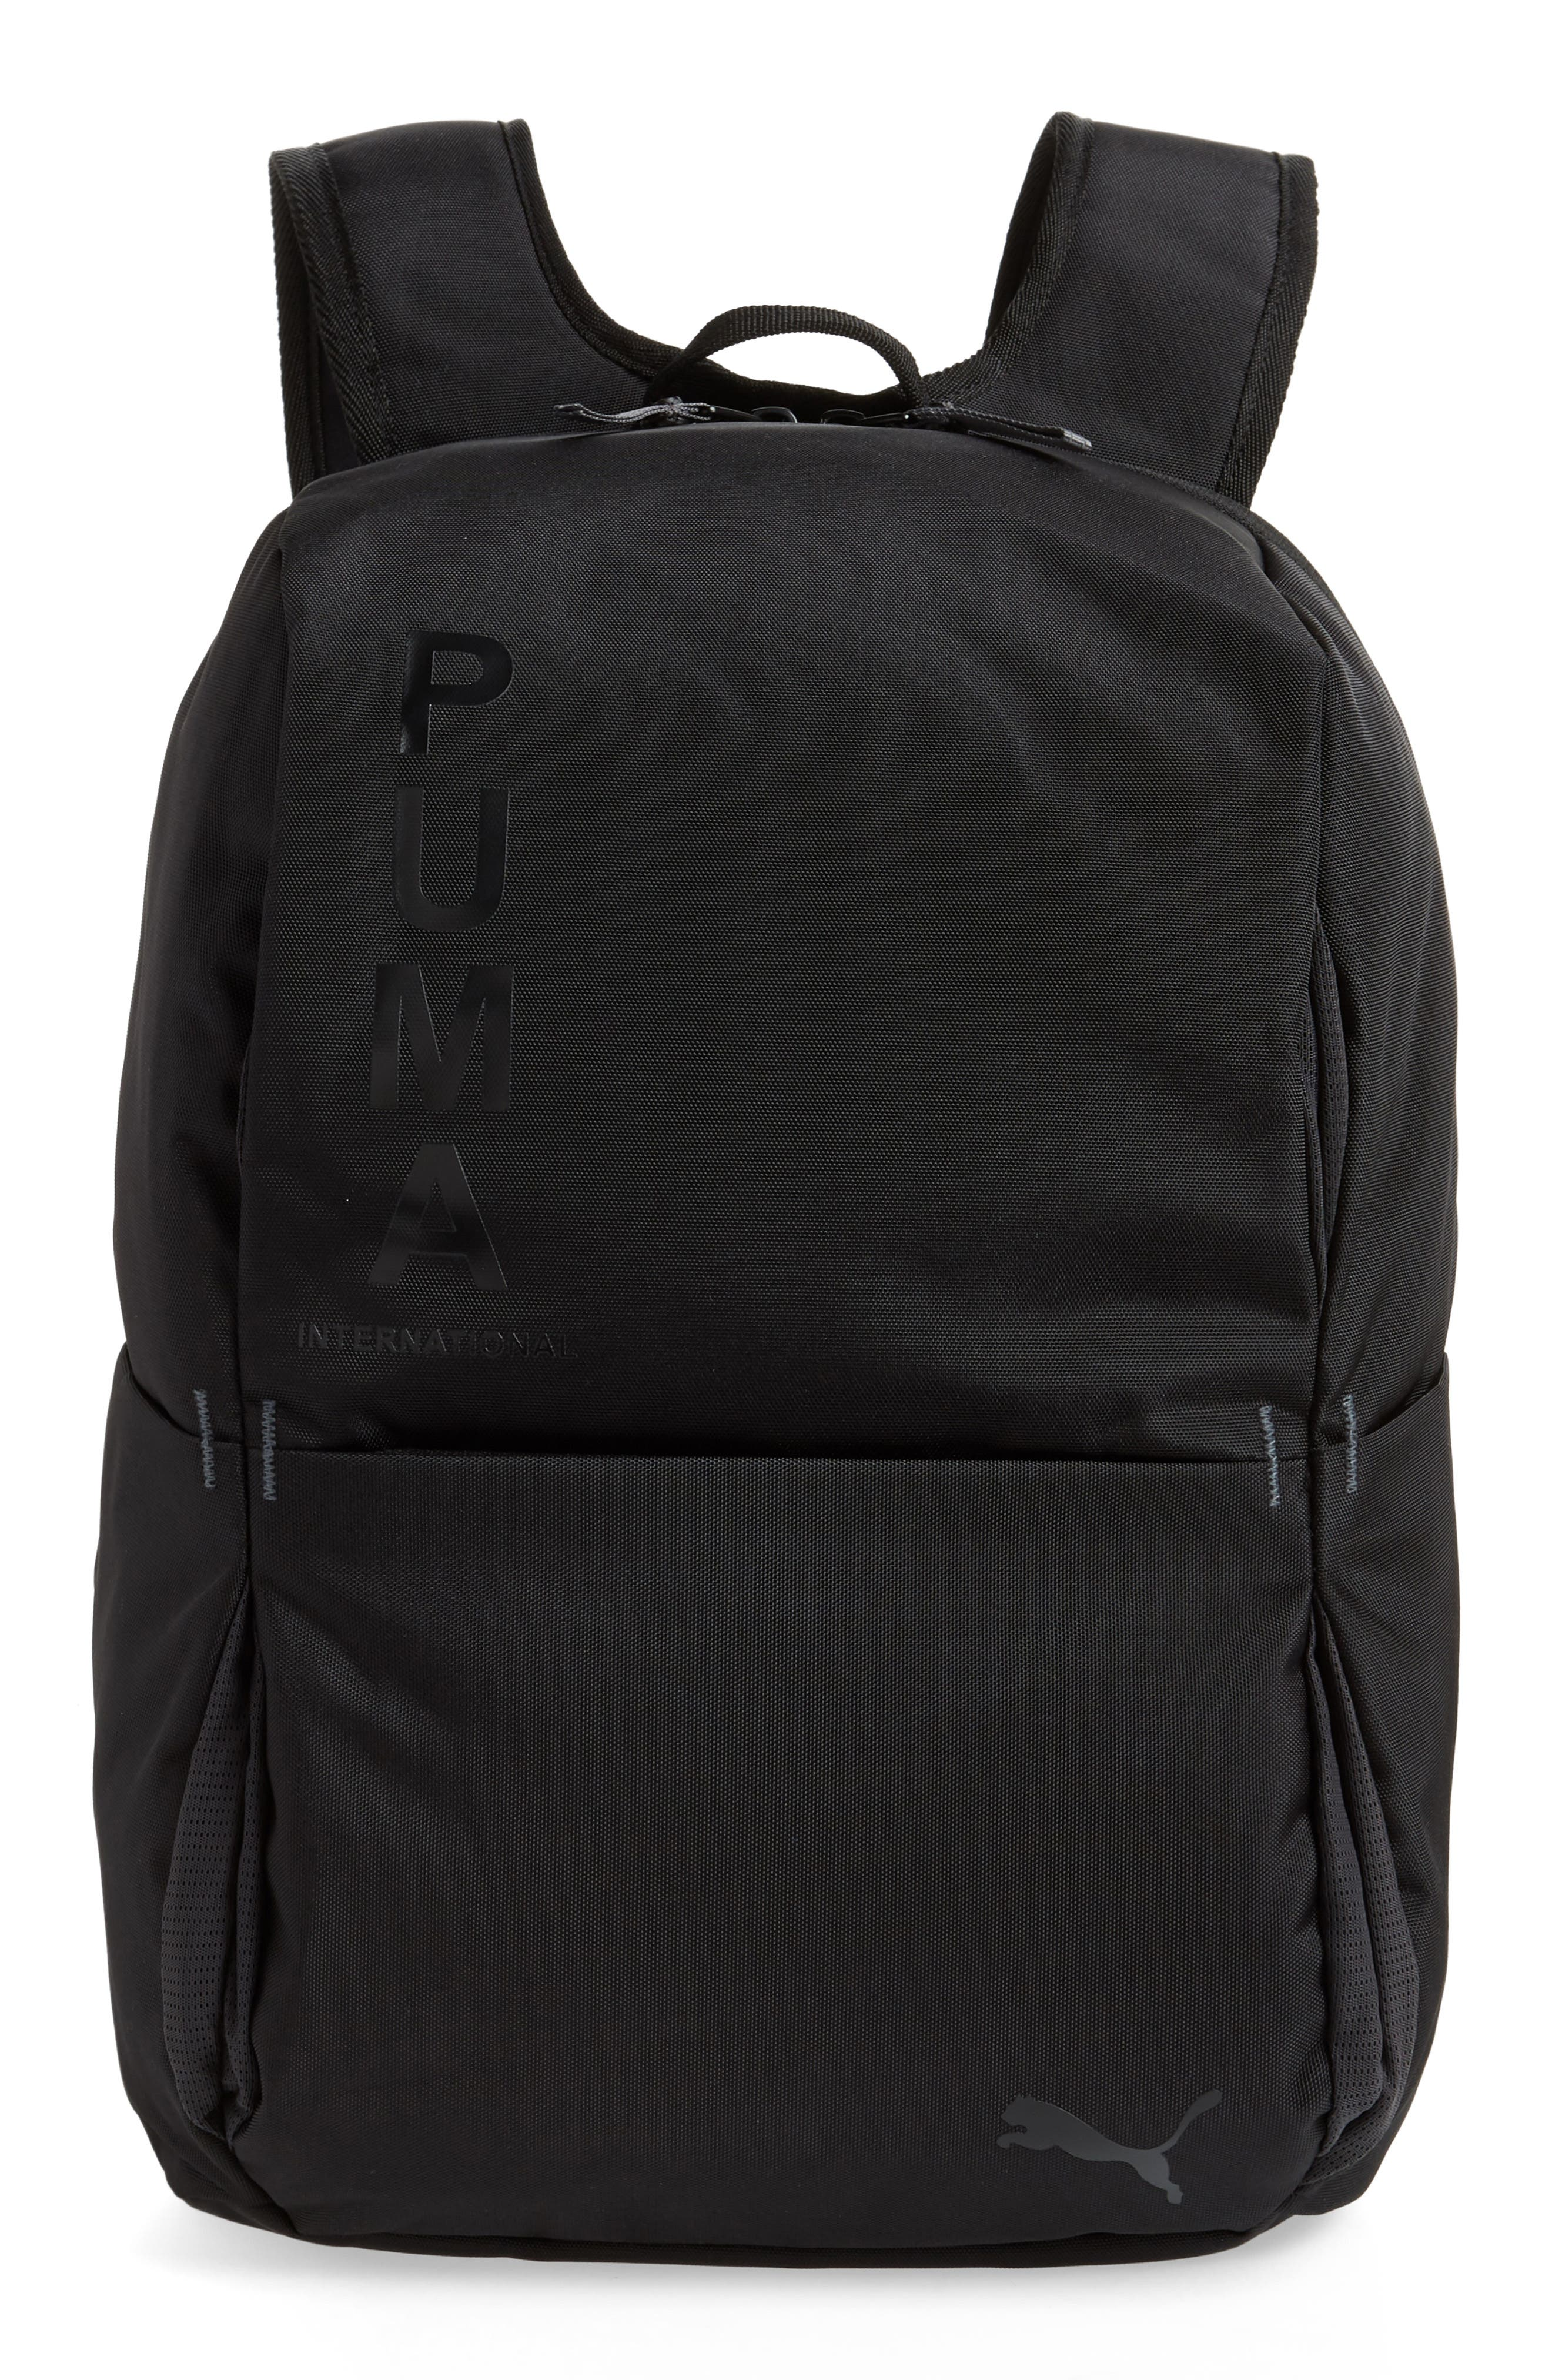 Puma Ace Backpack - Black